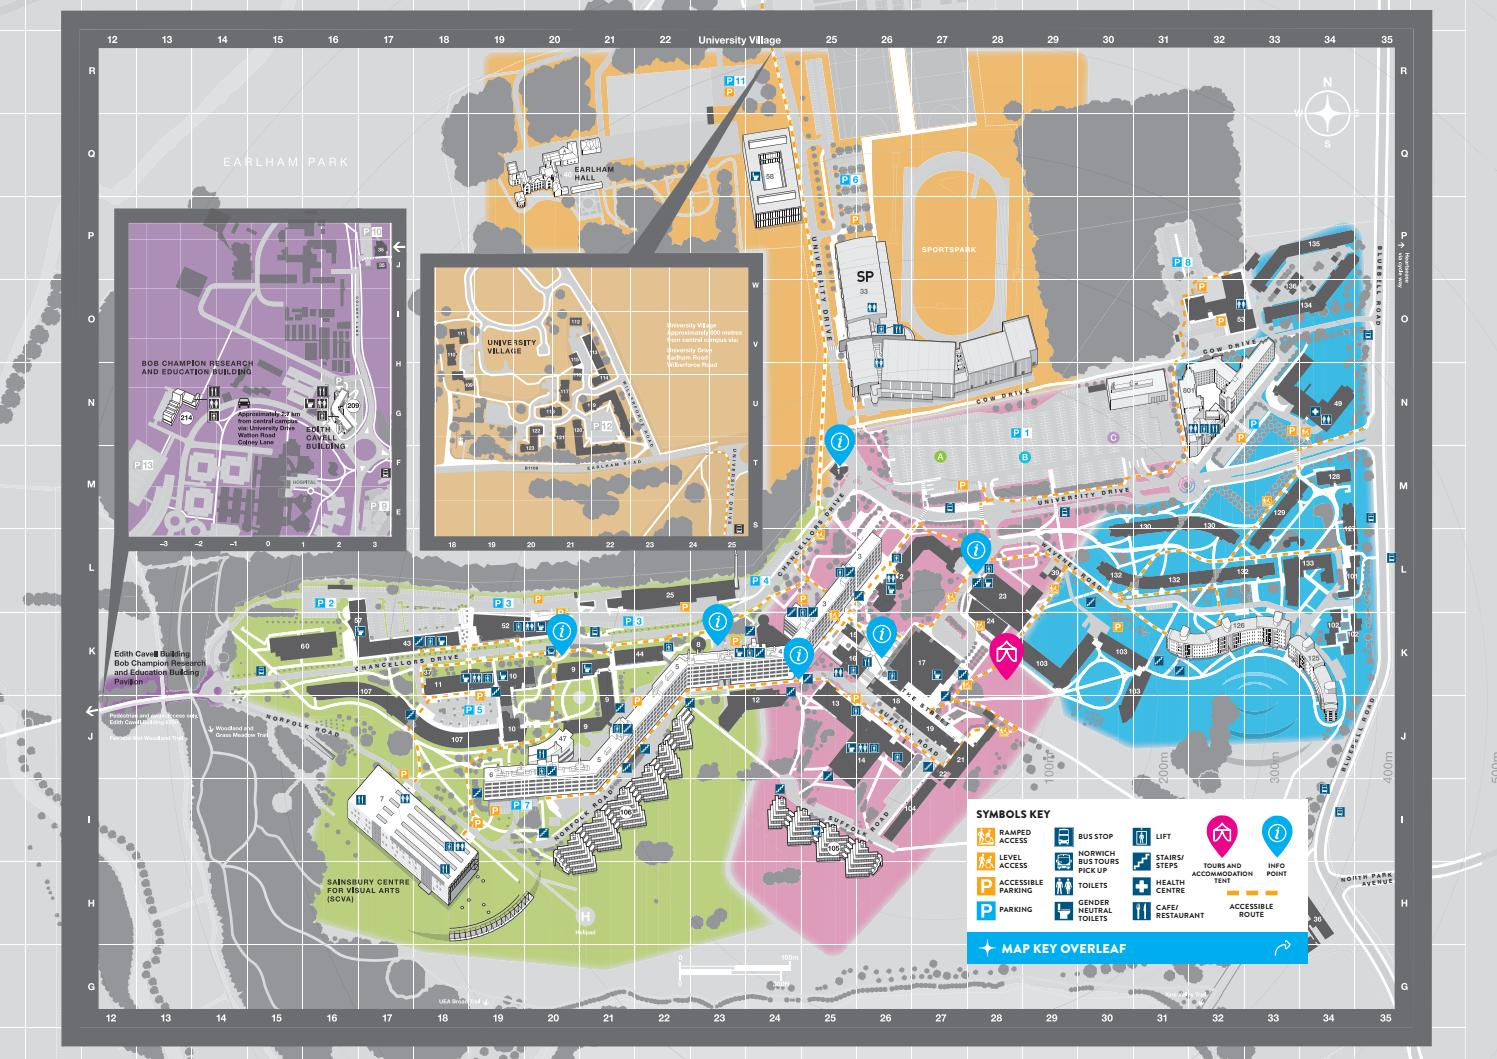 uea map of campus Open Day Programme 2019 Map By University Of East Anglia Issuu uea map of campus